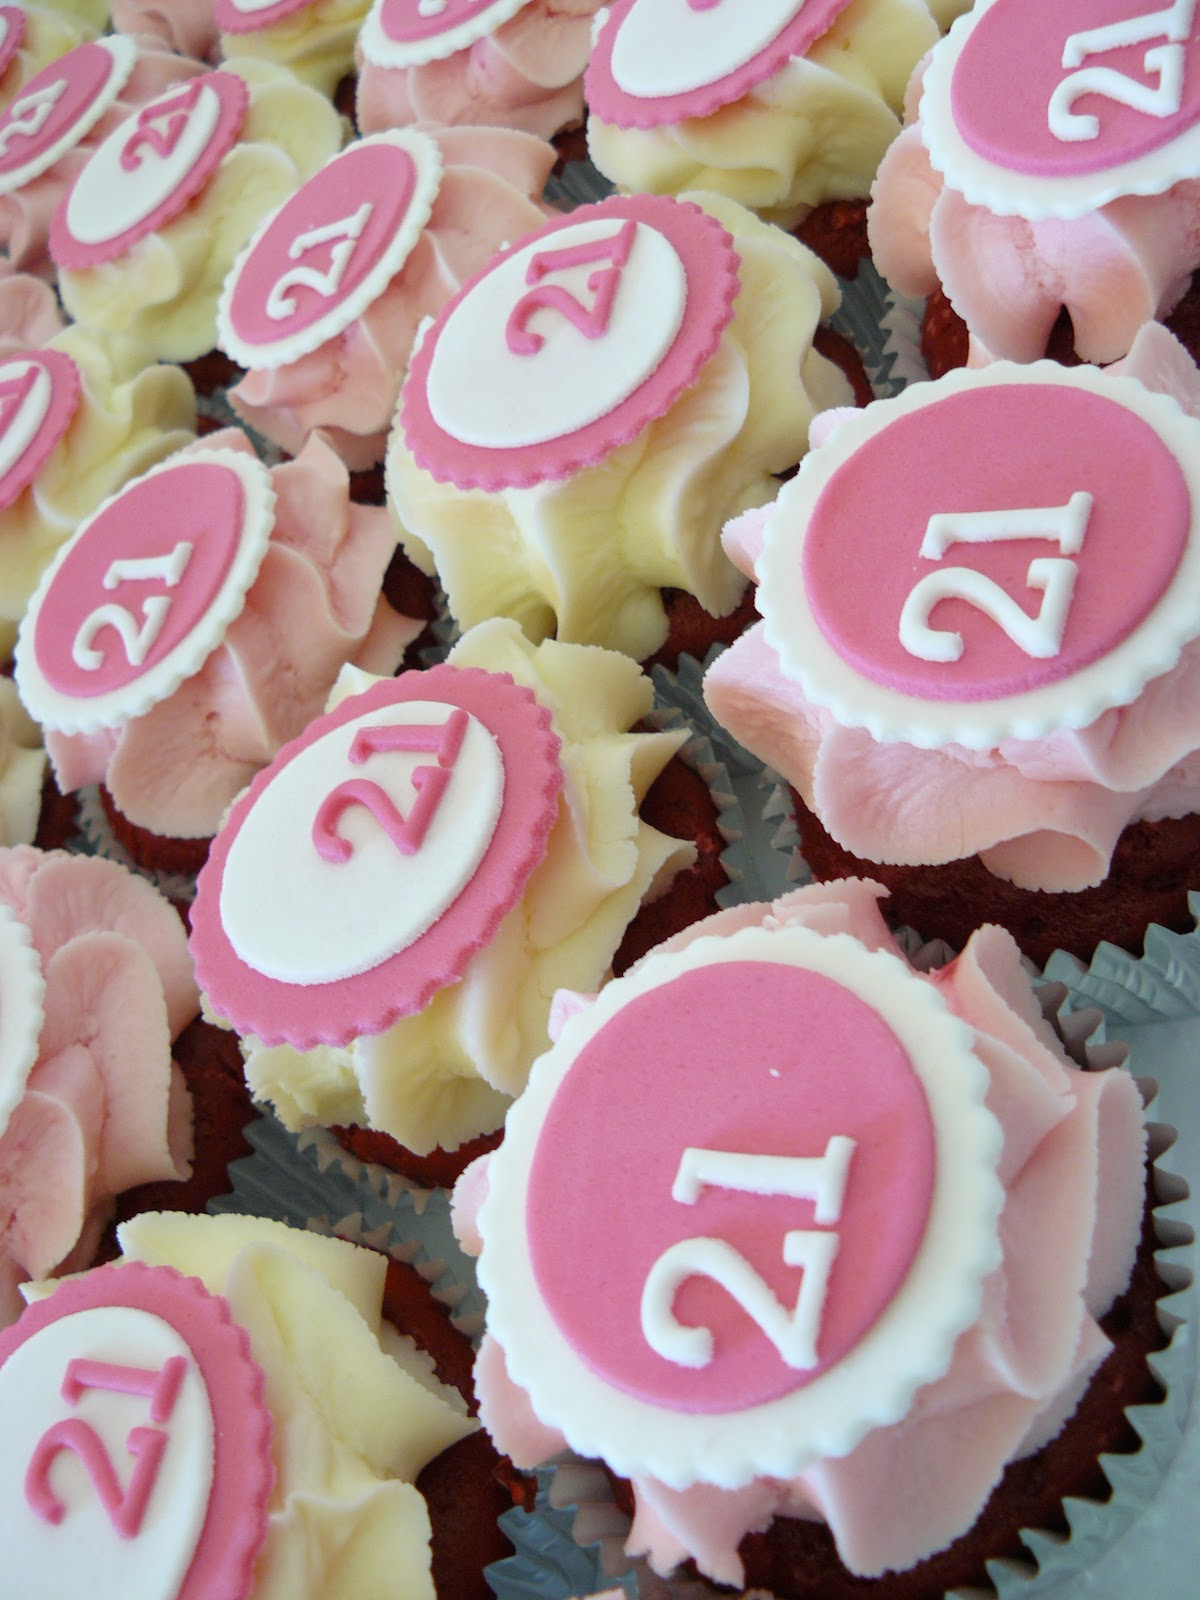 The Cup Cake Taste - Brisbane Cupcakes: 21st Birthday Cupcakes